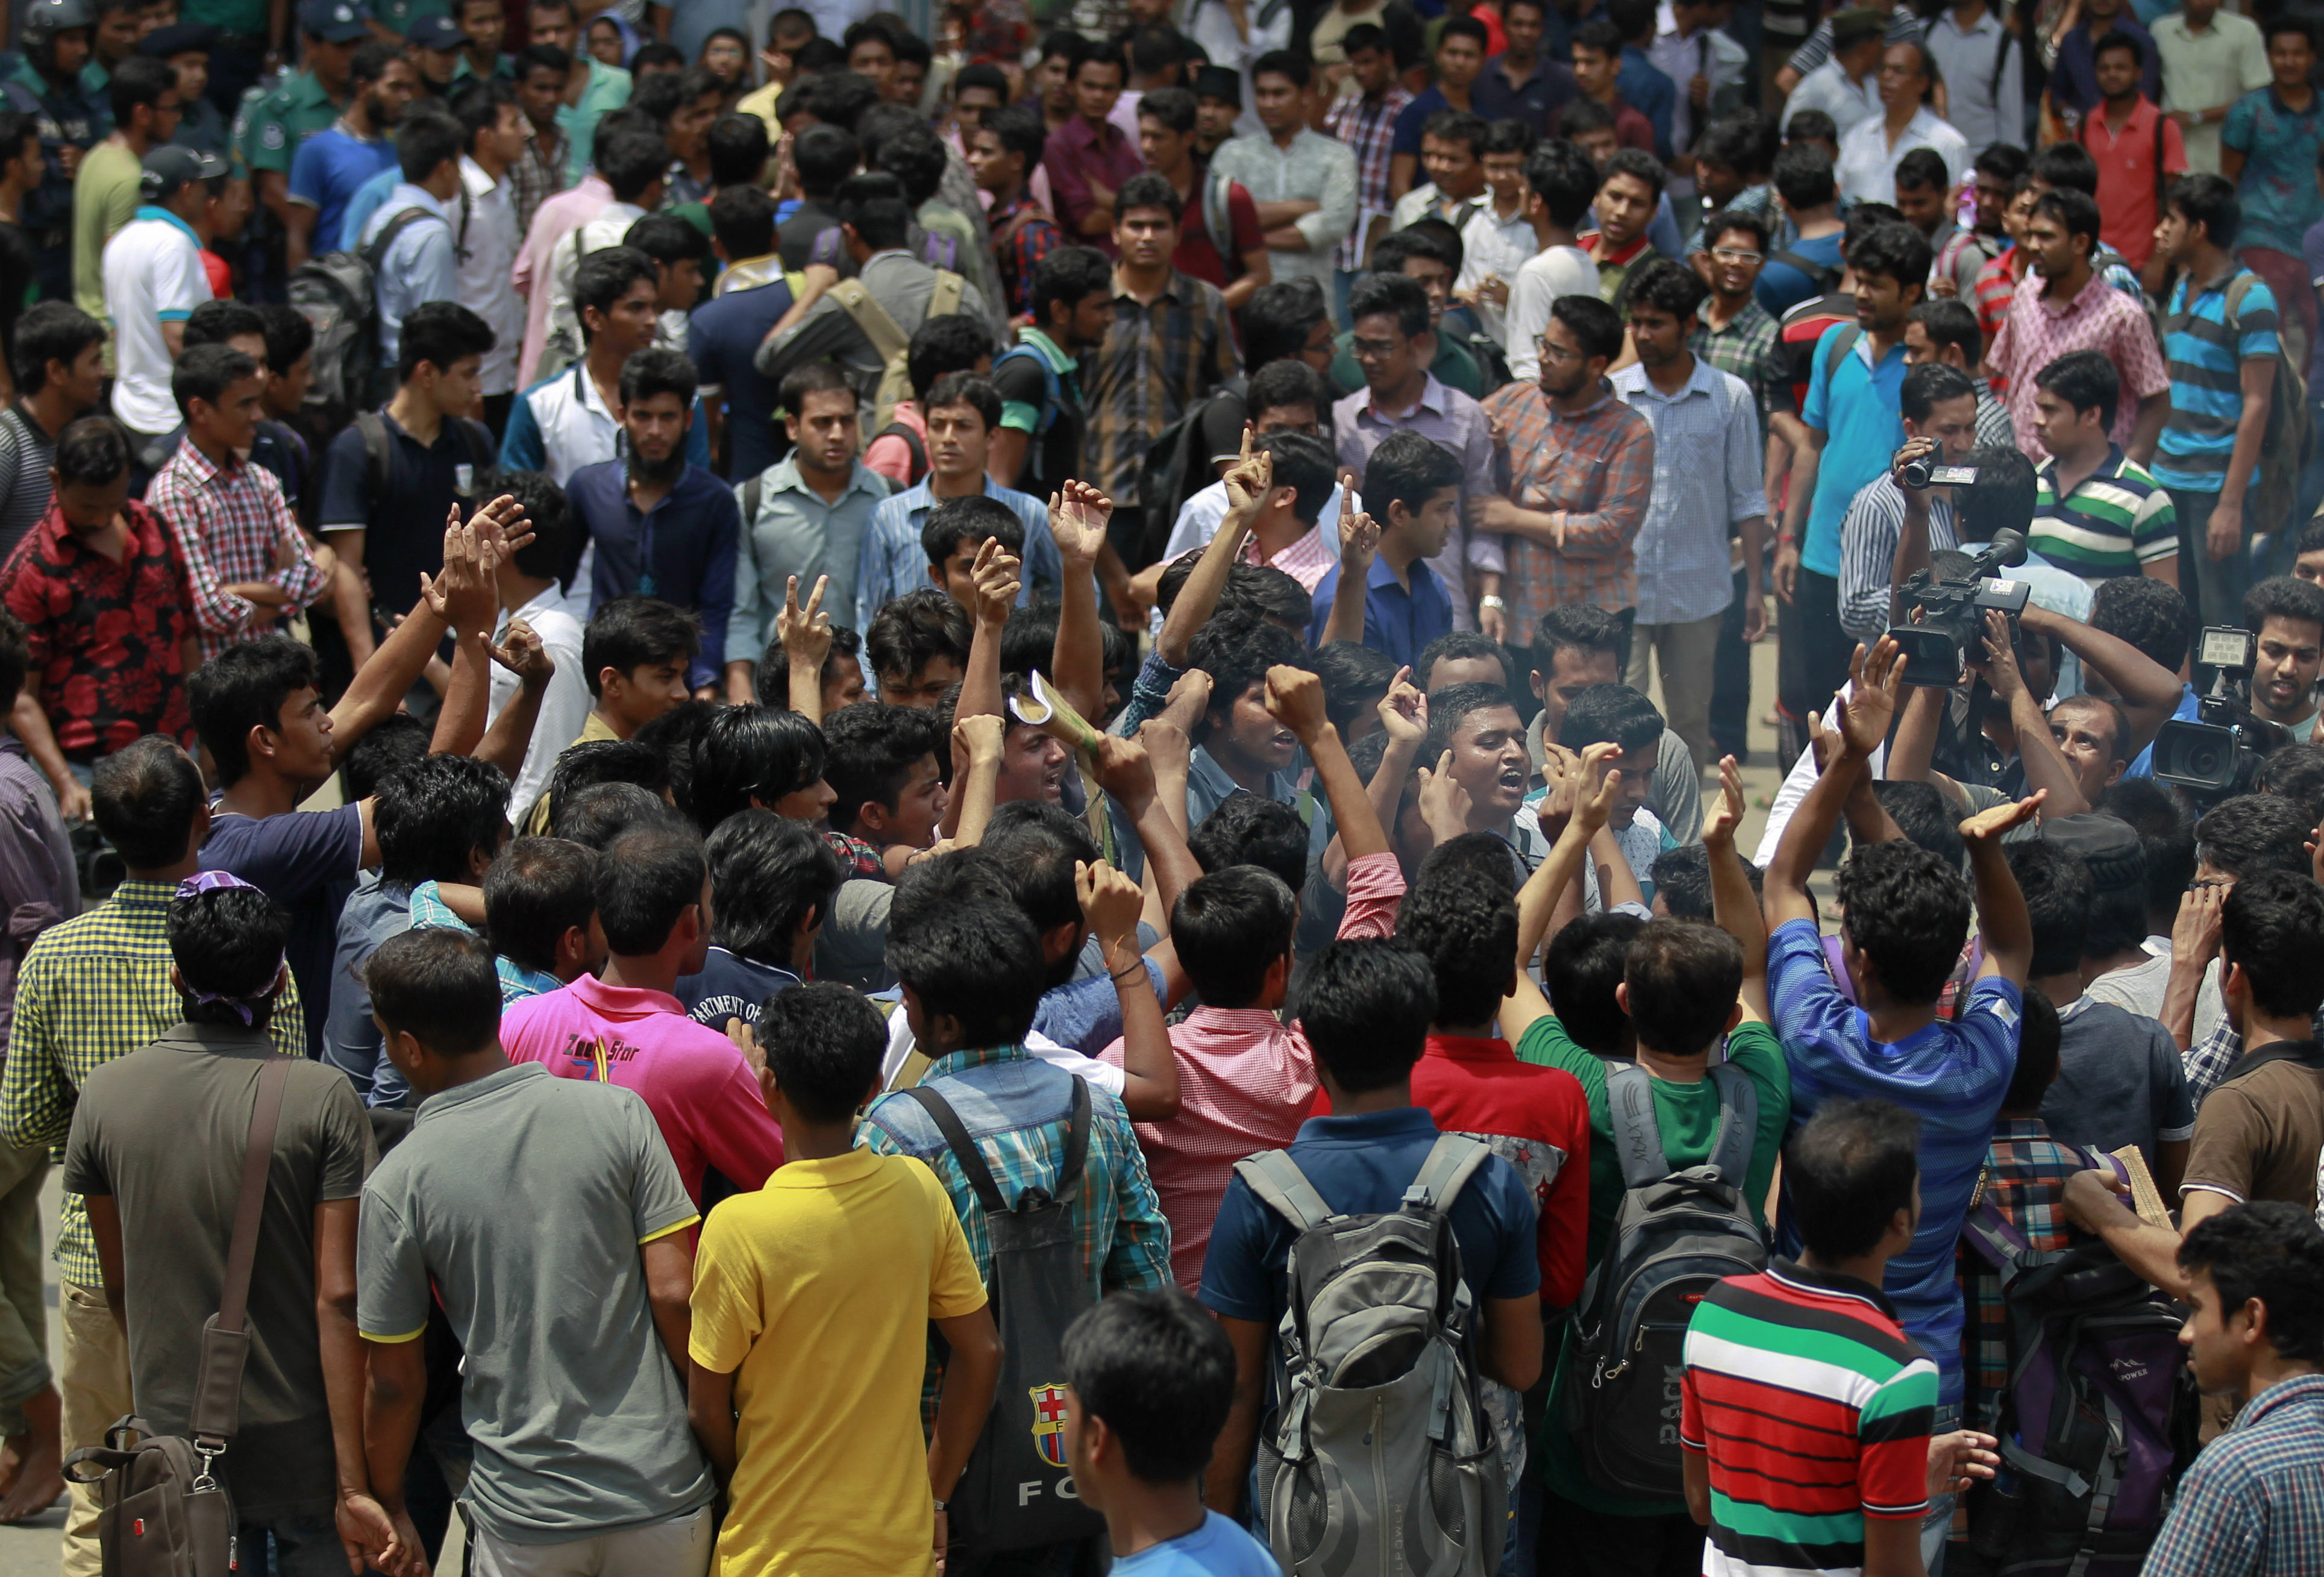 Students protest seeking the arrest of three motorcycle-riding assailants who hacked and shot student activist Nazimuddin Samad to death as he walked with a friend, in Dhaka, Bangladesh, April 7, 2016.